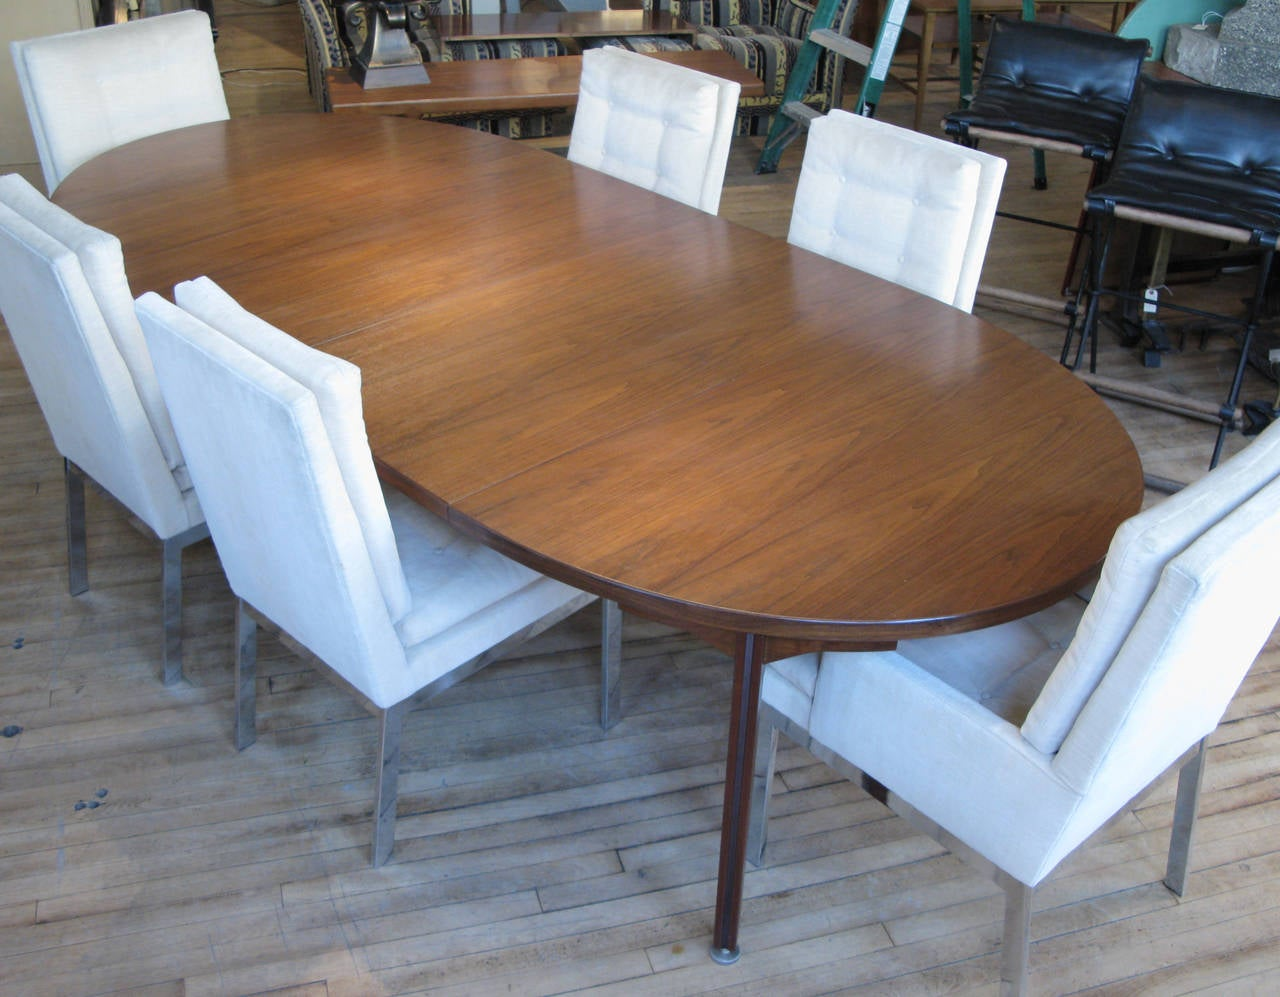 Mid Century Modern Vintage Oval Walnut Extension Dining Table By Jens Risom For